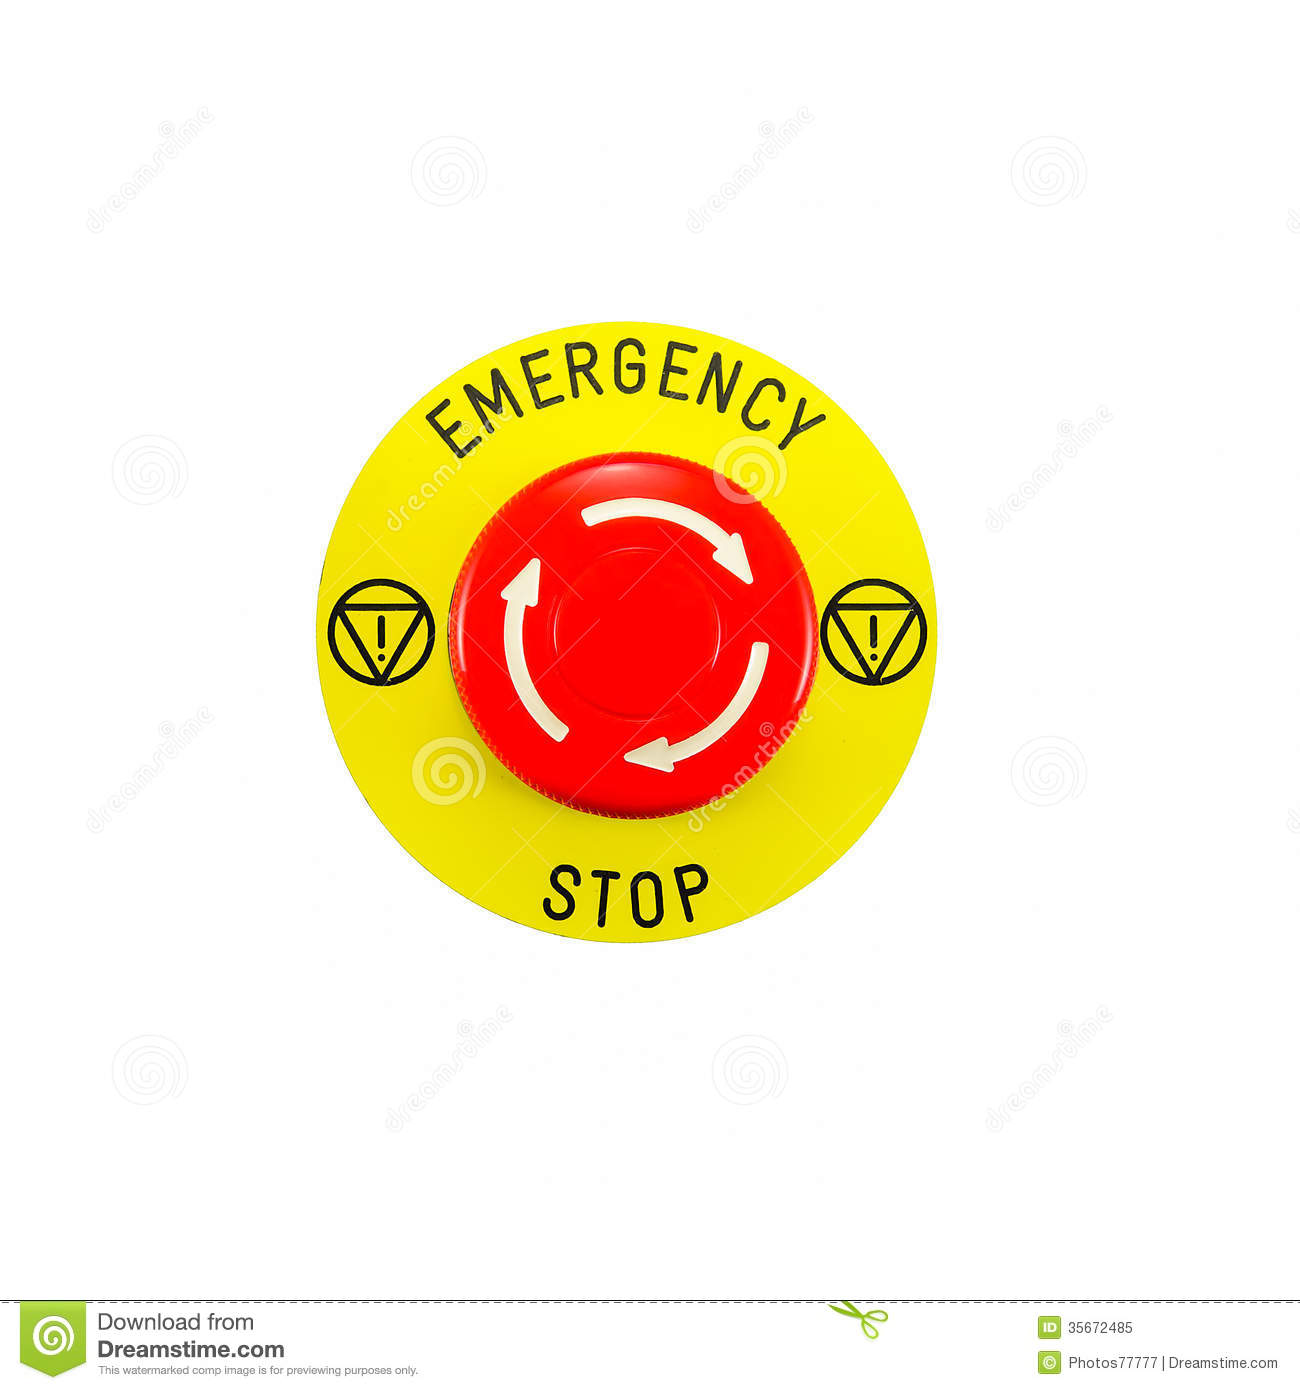 Emergency stop icon clipart emergency off - Background Button Emergency